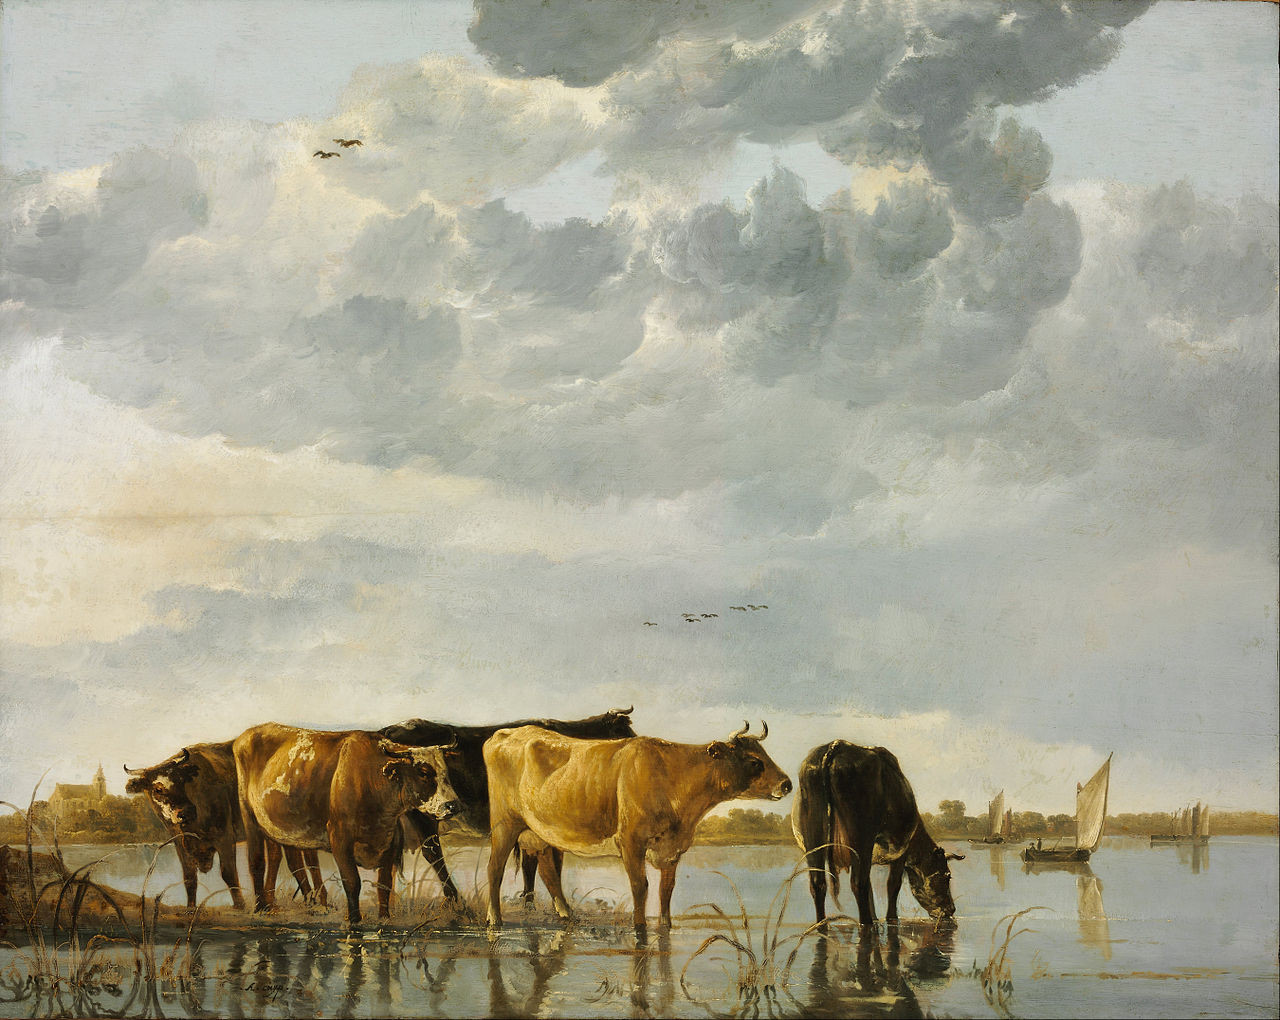 Cows in the water xx museum of fine arts budapest